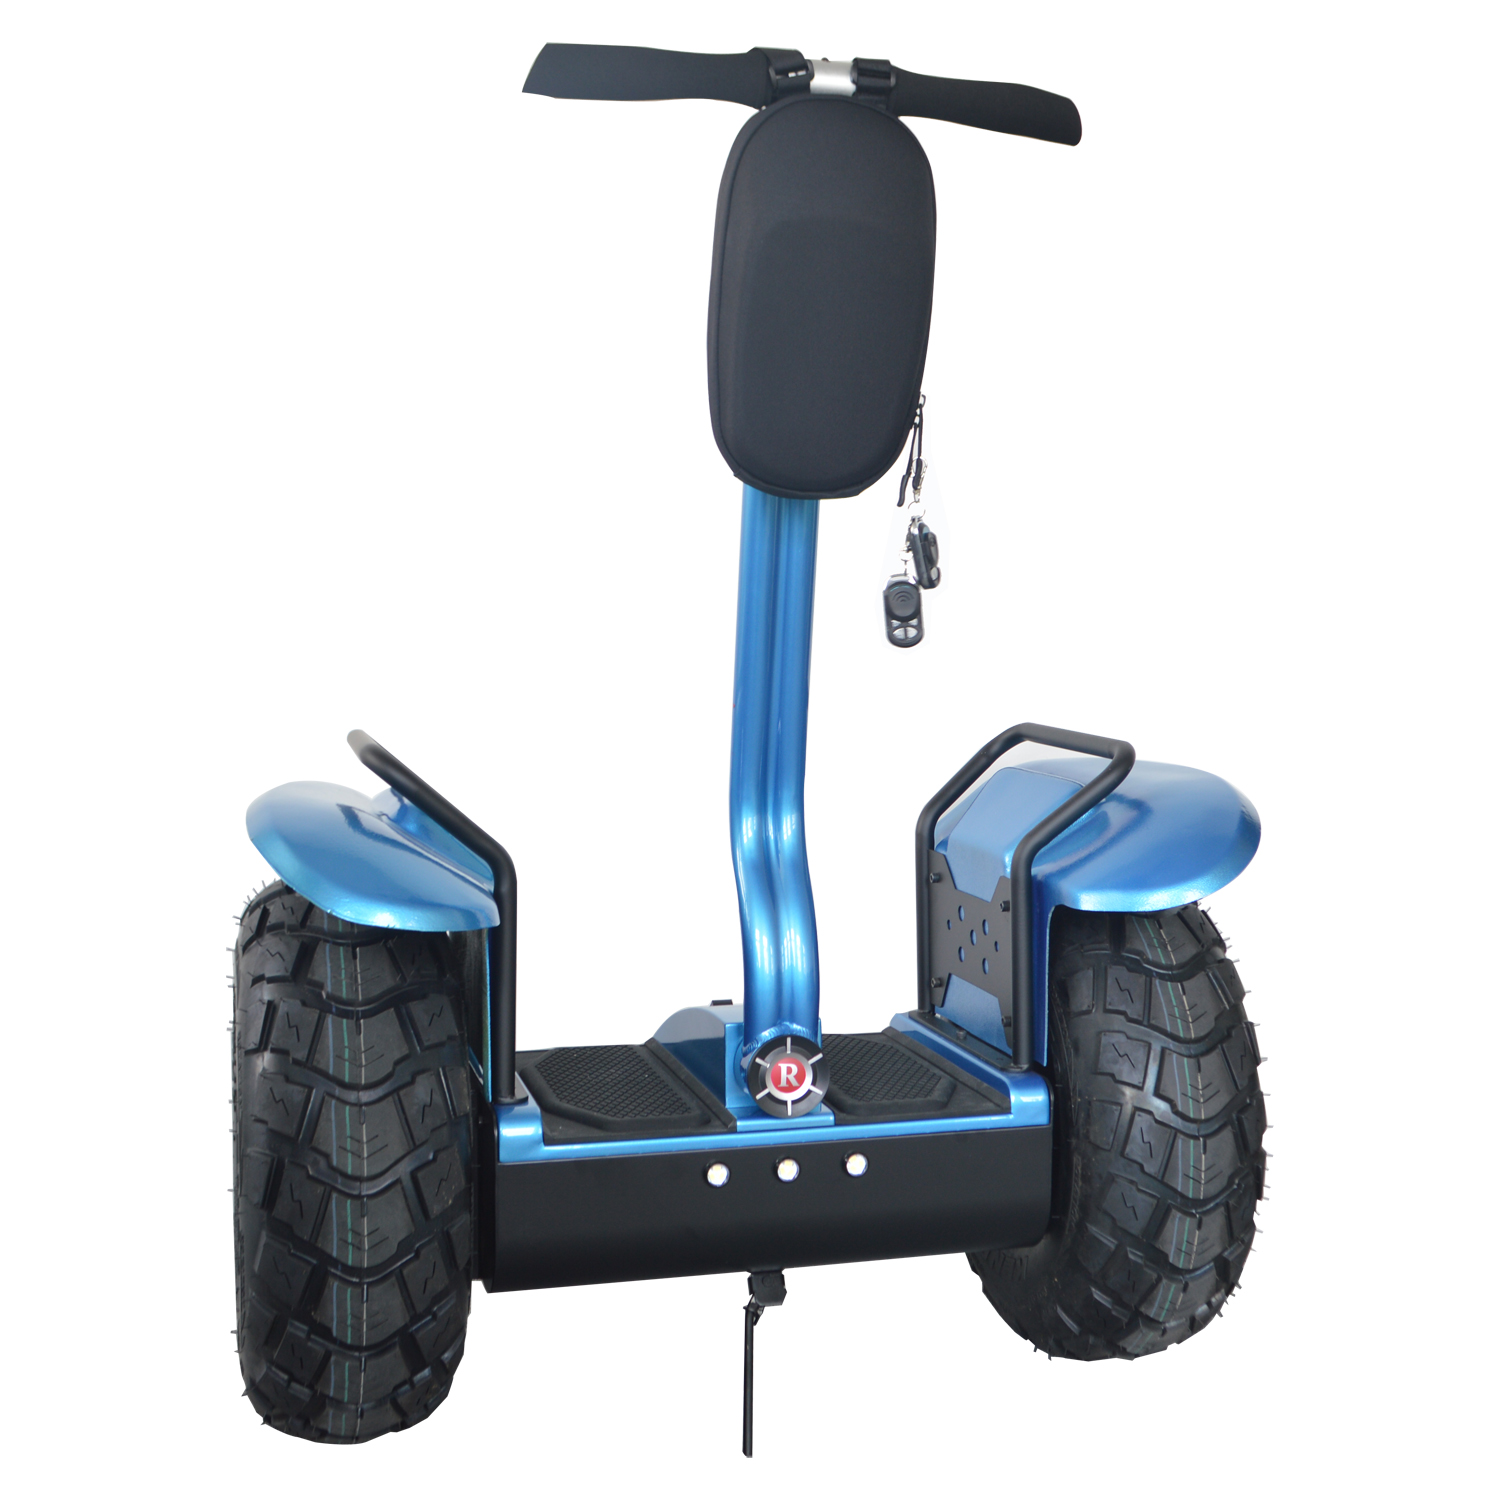 segway an Segue definition is — define segue: proceed to what follows without pausedefine segue: proceed to what follows without pause how to use segue in a sentence.